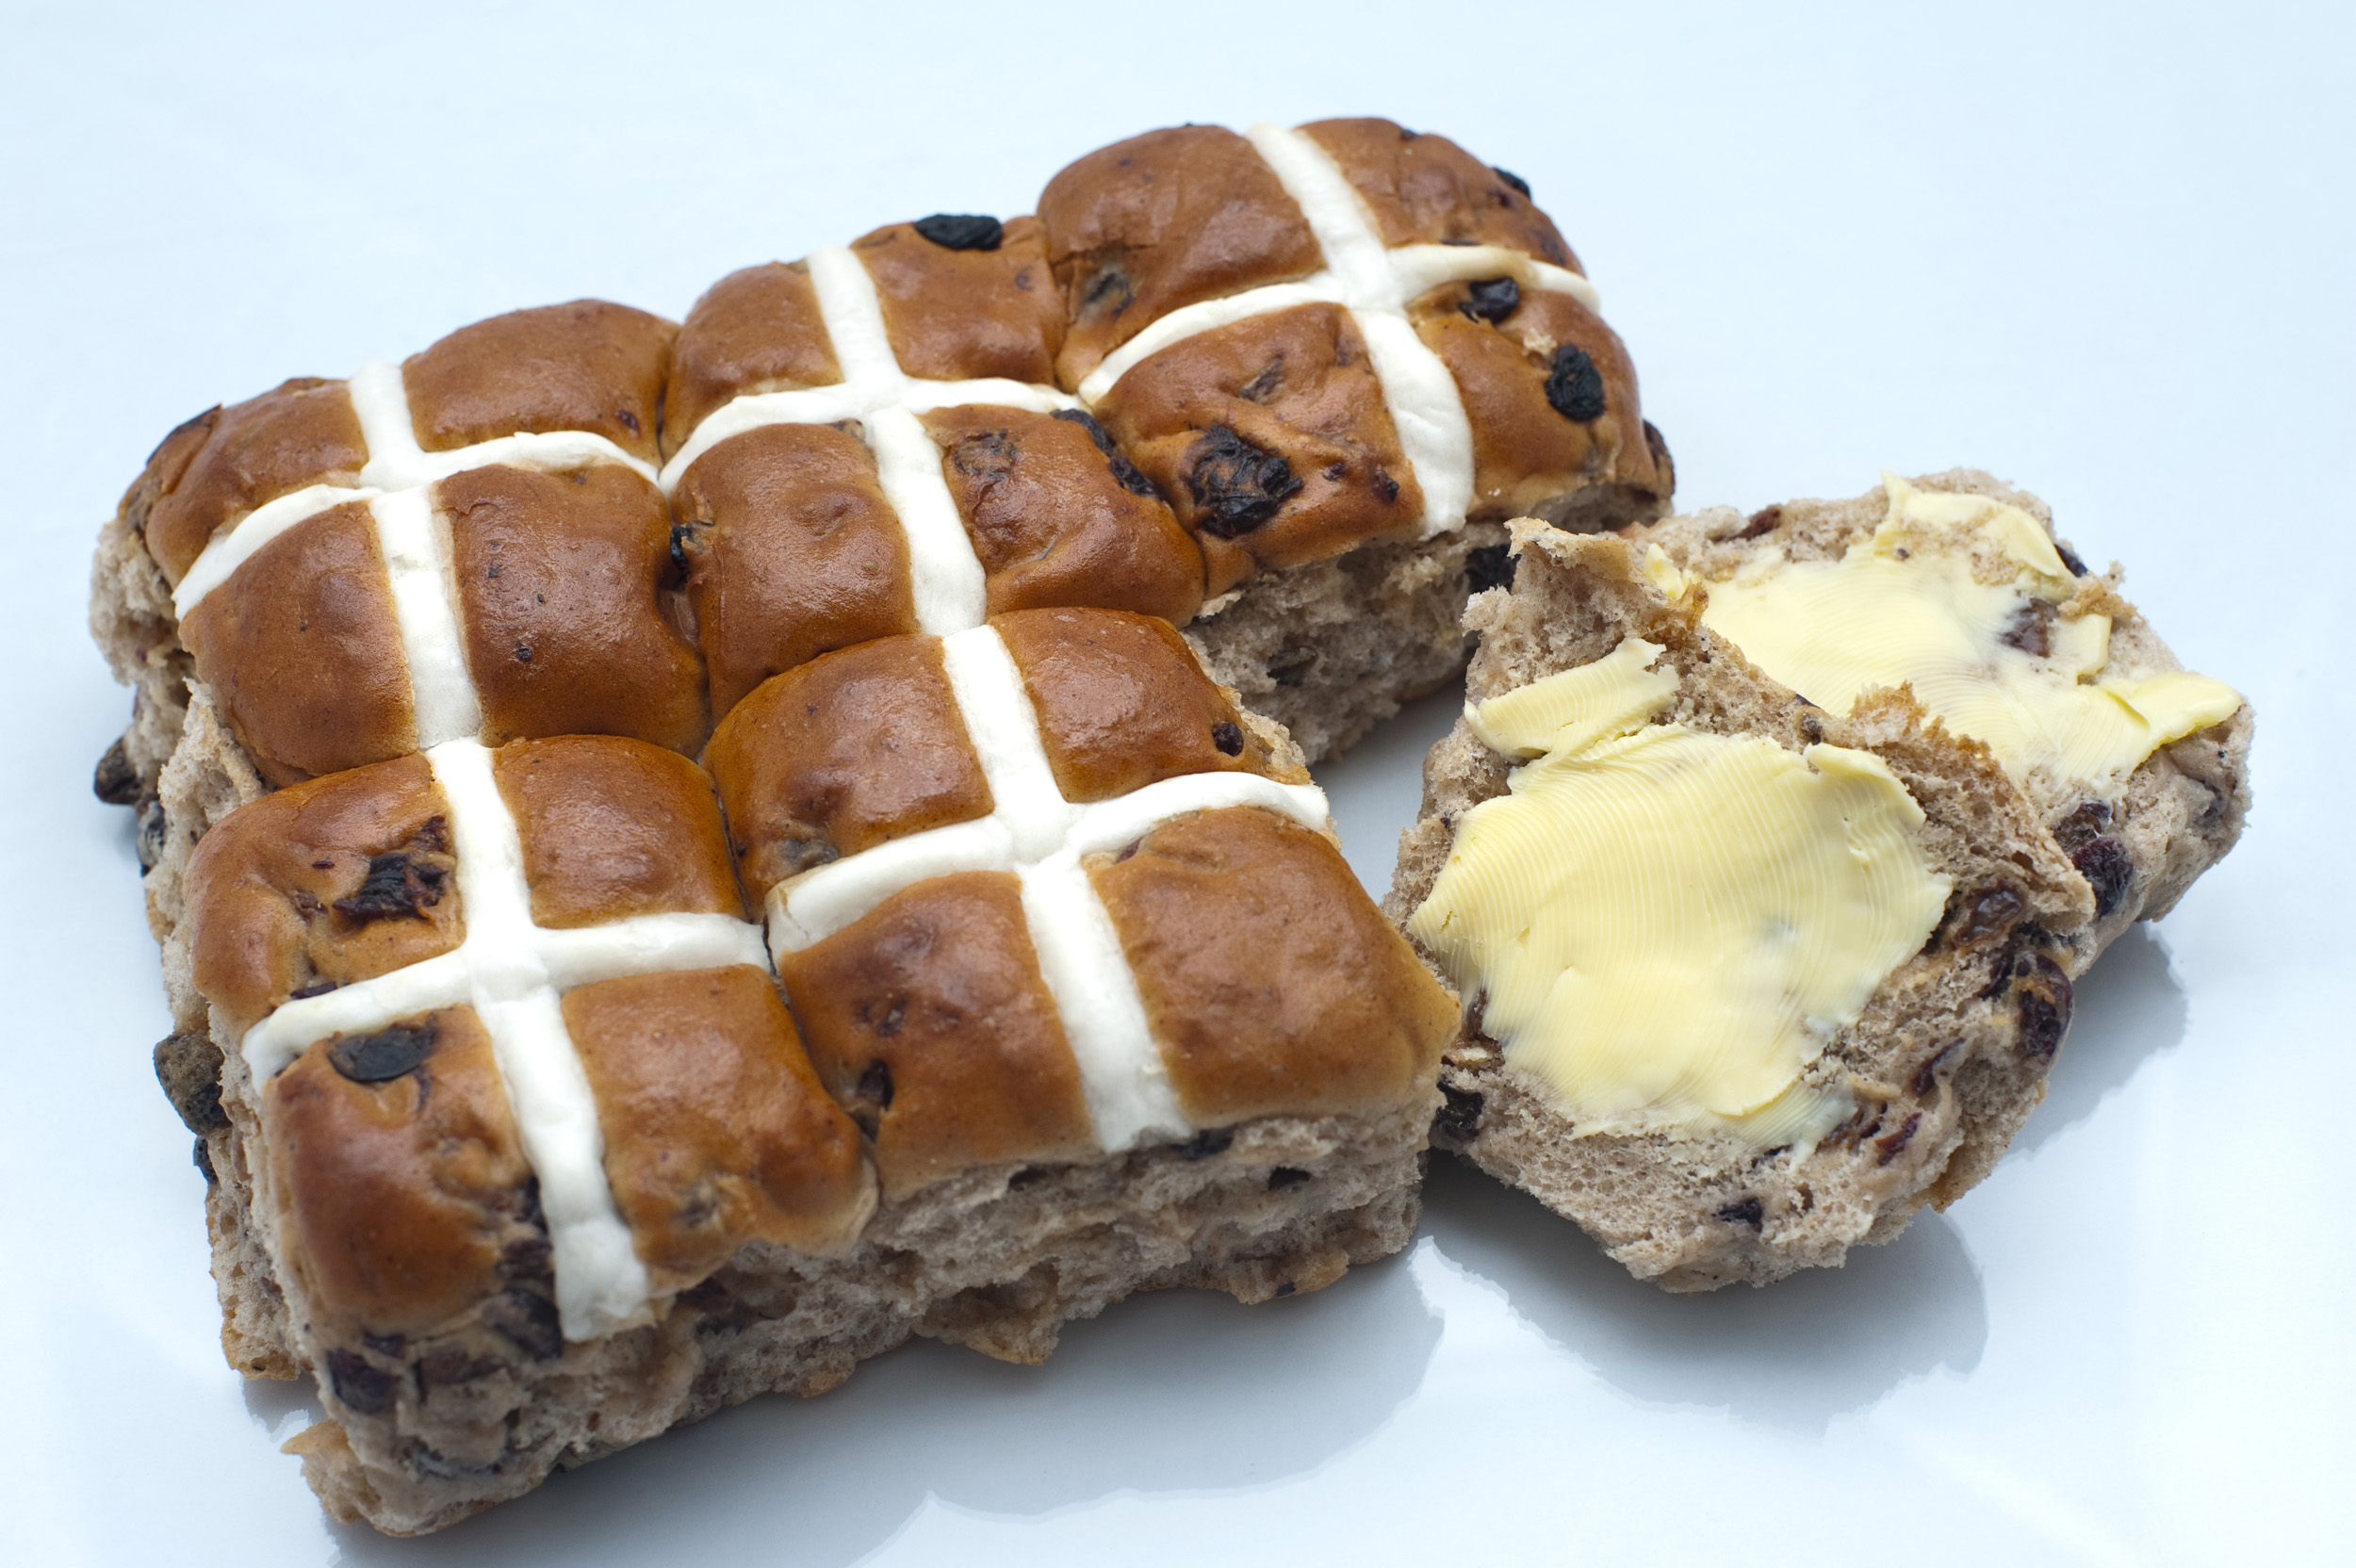 butter_hotcross_bun.jpg - Overhead view of a batch of fresh Easter Hot Cross Buns showing the glazed cross with one sliced and buttered one to the side